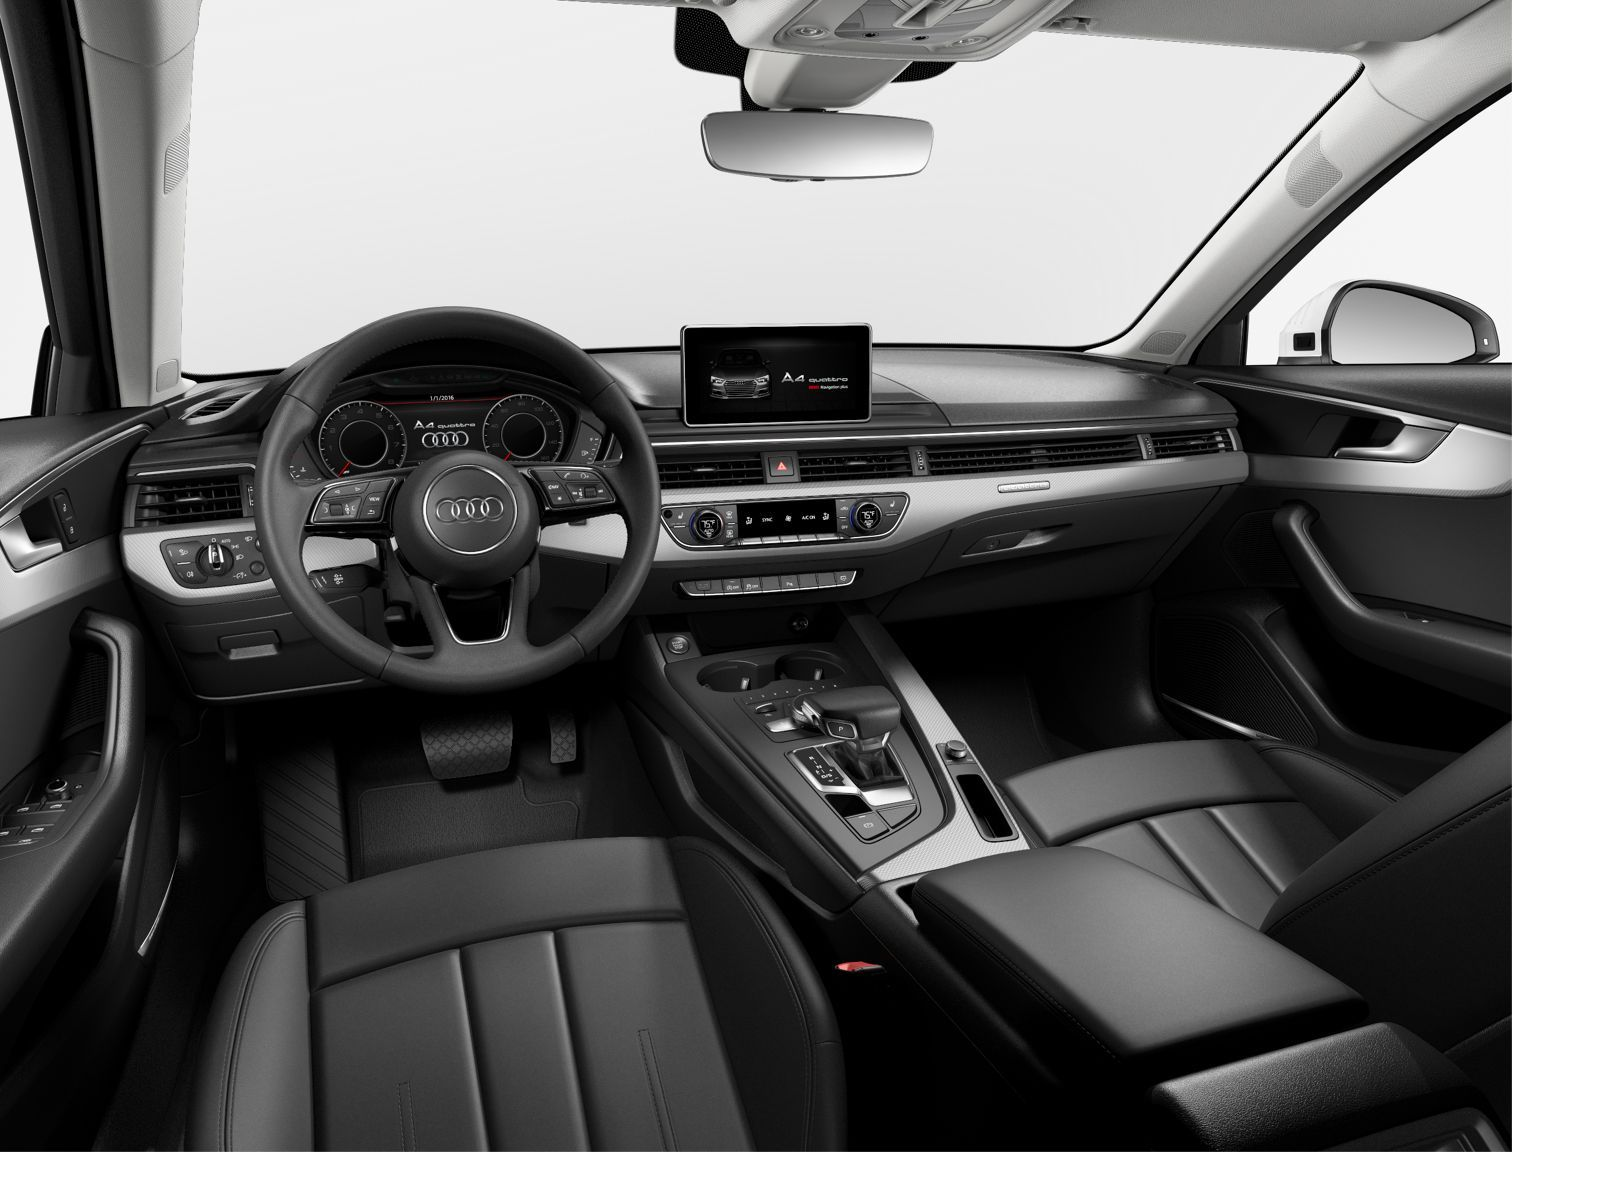 2017 Audi A4 prestige with larger infotainment screen mmi touch